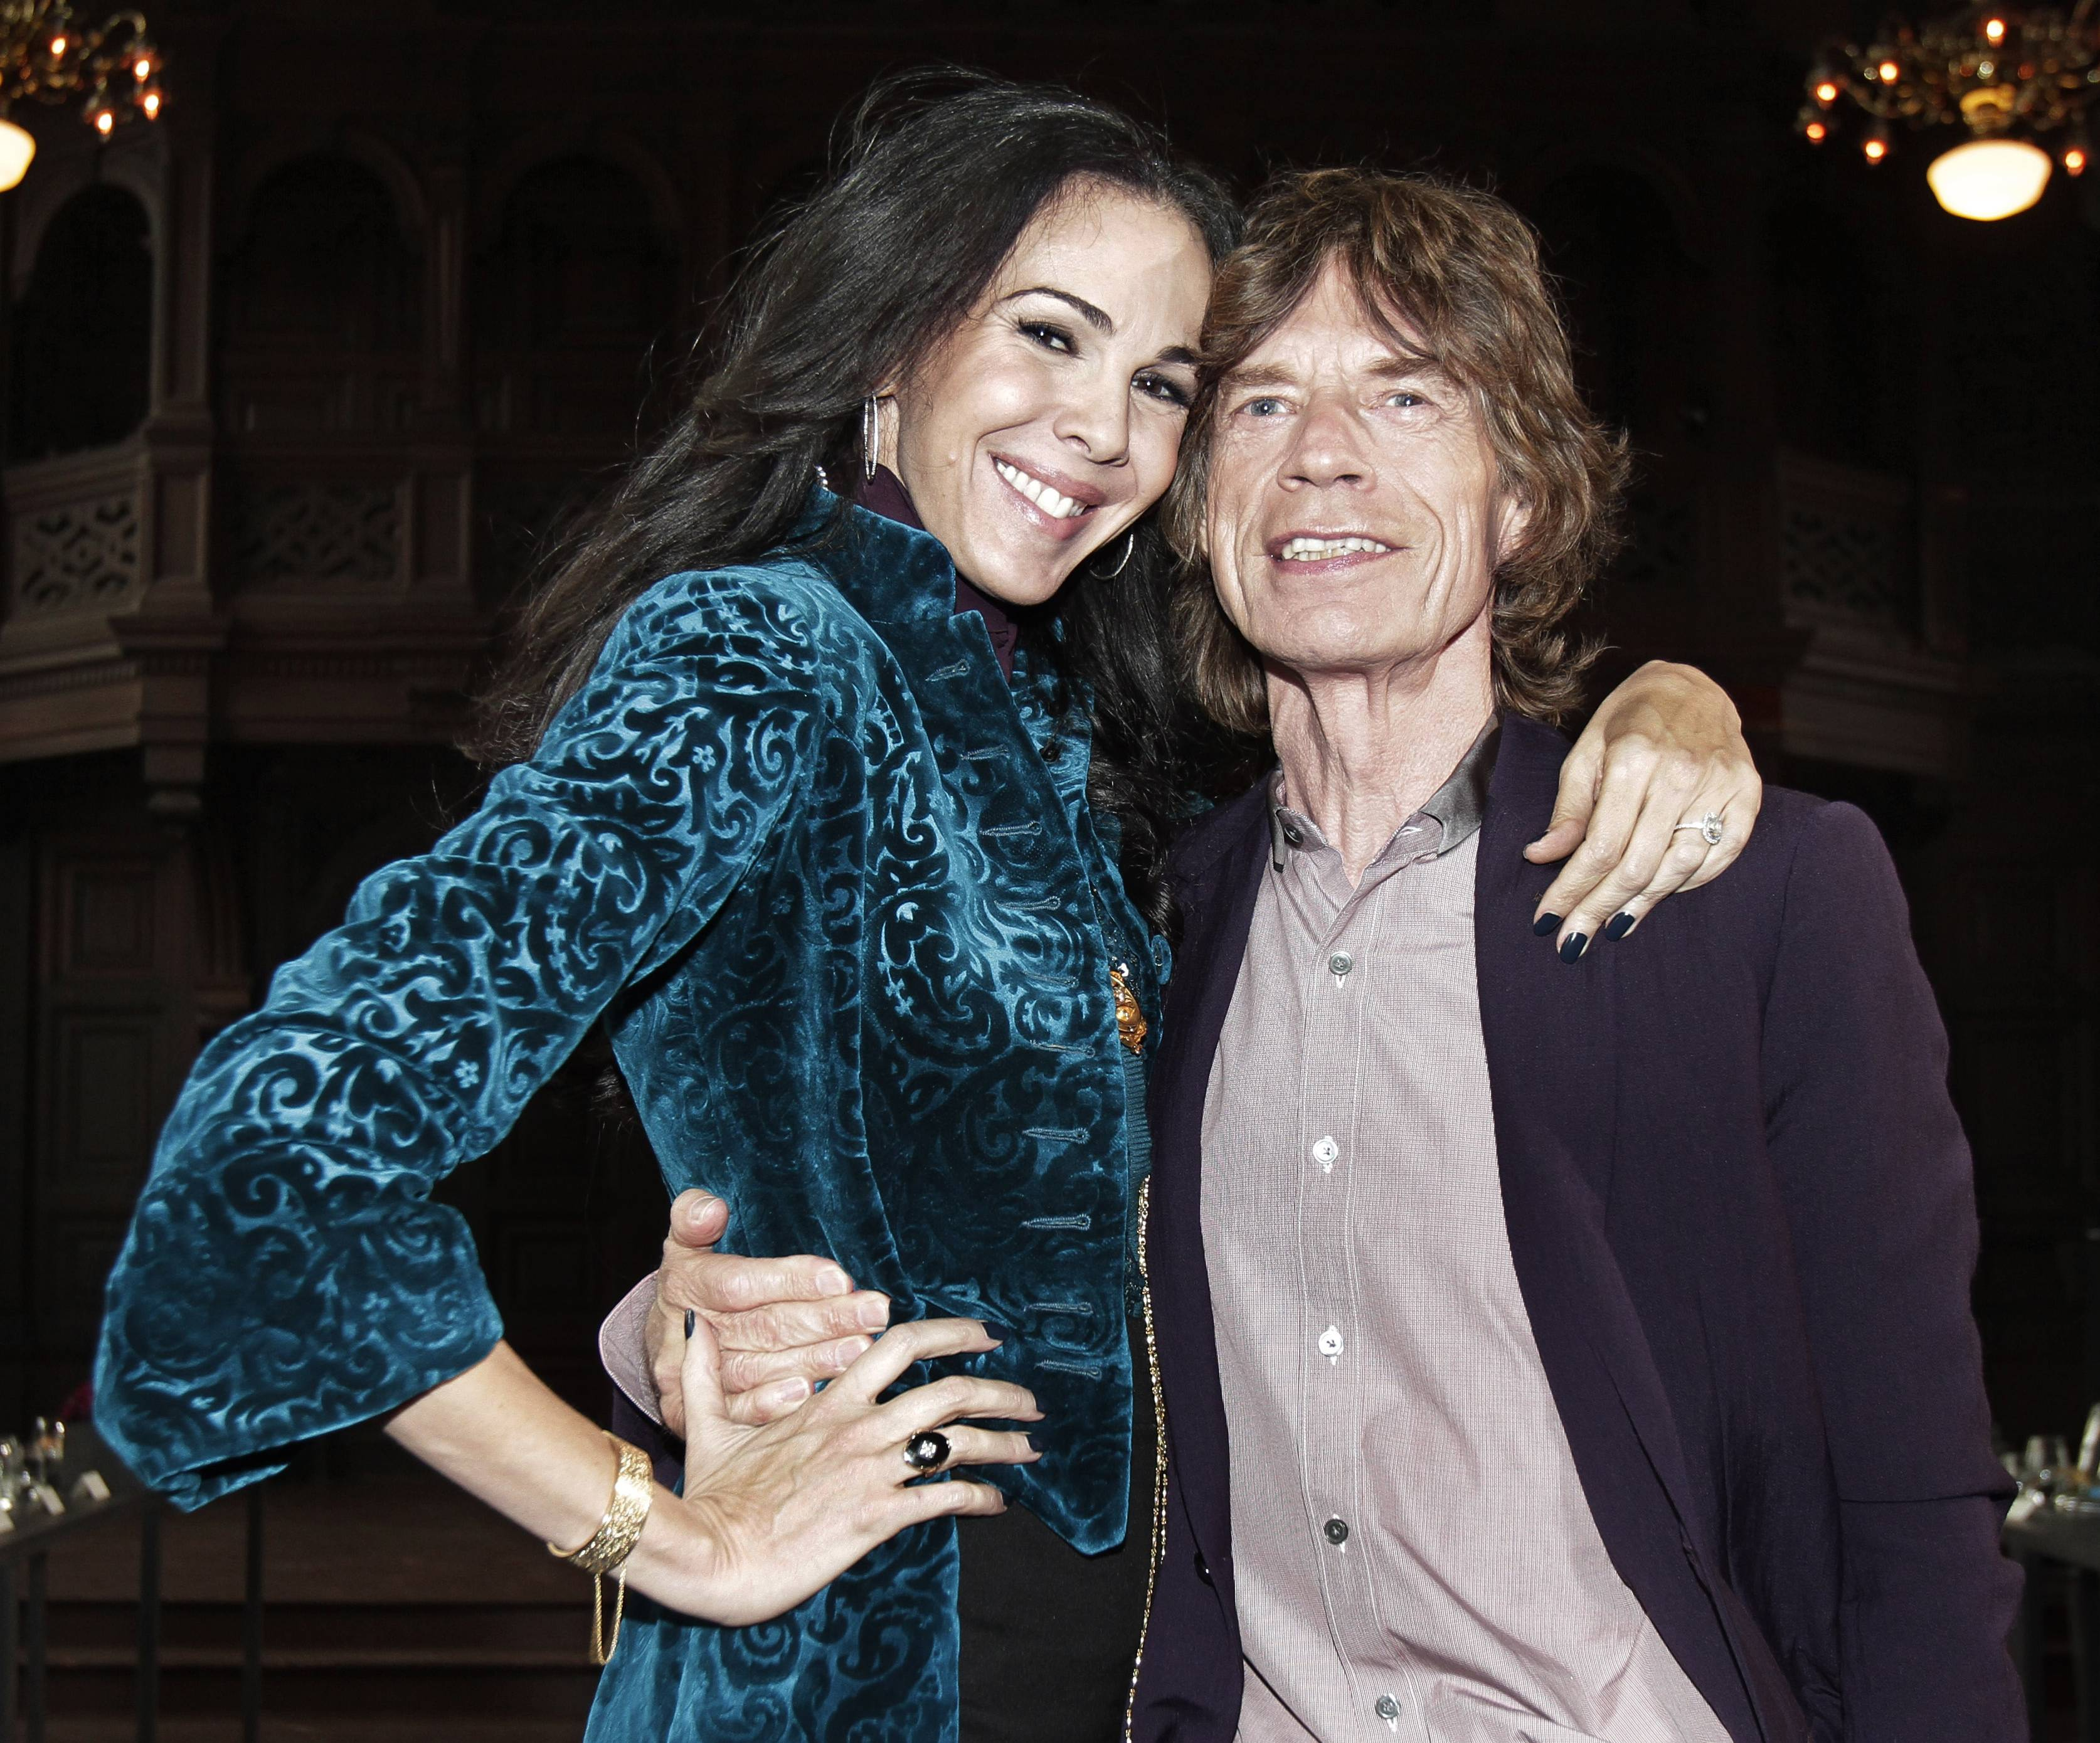 Designer L'Wren Scott has left her entire estate to longtime boyfriend and Rolling Stones frontman Jagger. Scott committed suicide on March 17 in New York.